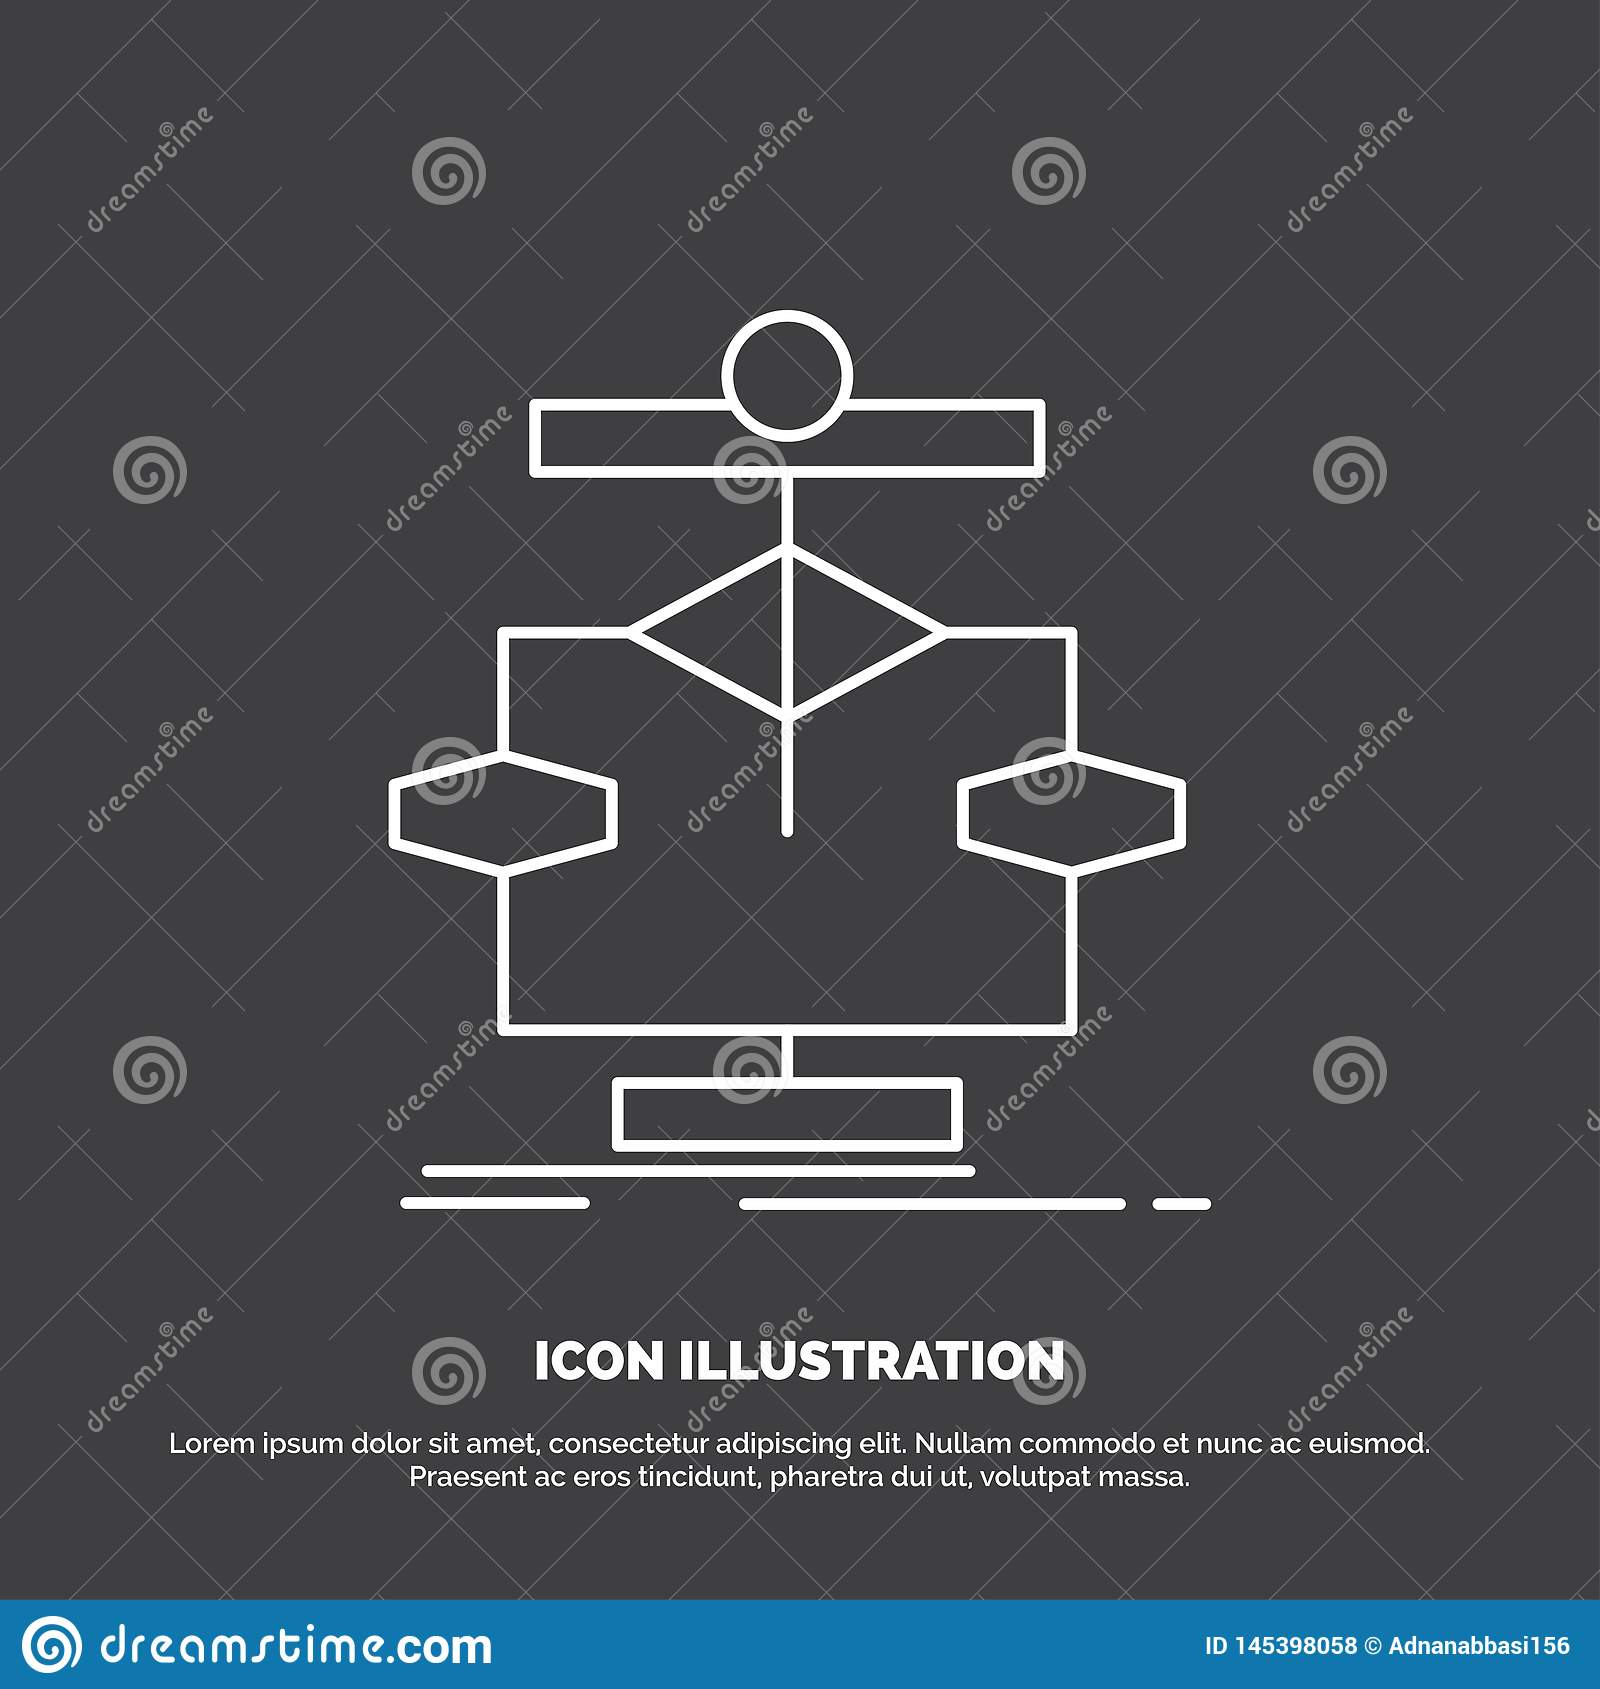 Algorithm, chart, data, diagram, flow Icon. Line vector symbol for UI and UX, website or mobile application